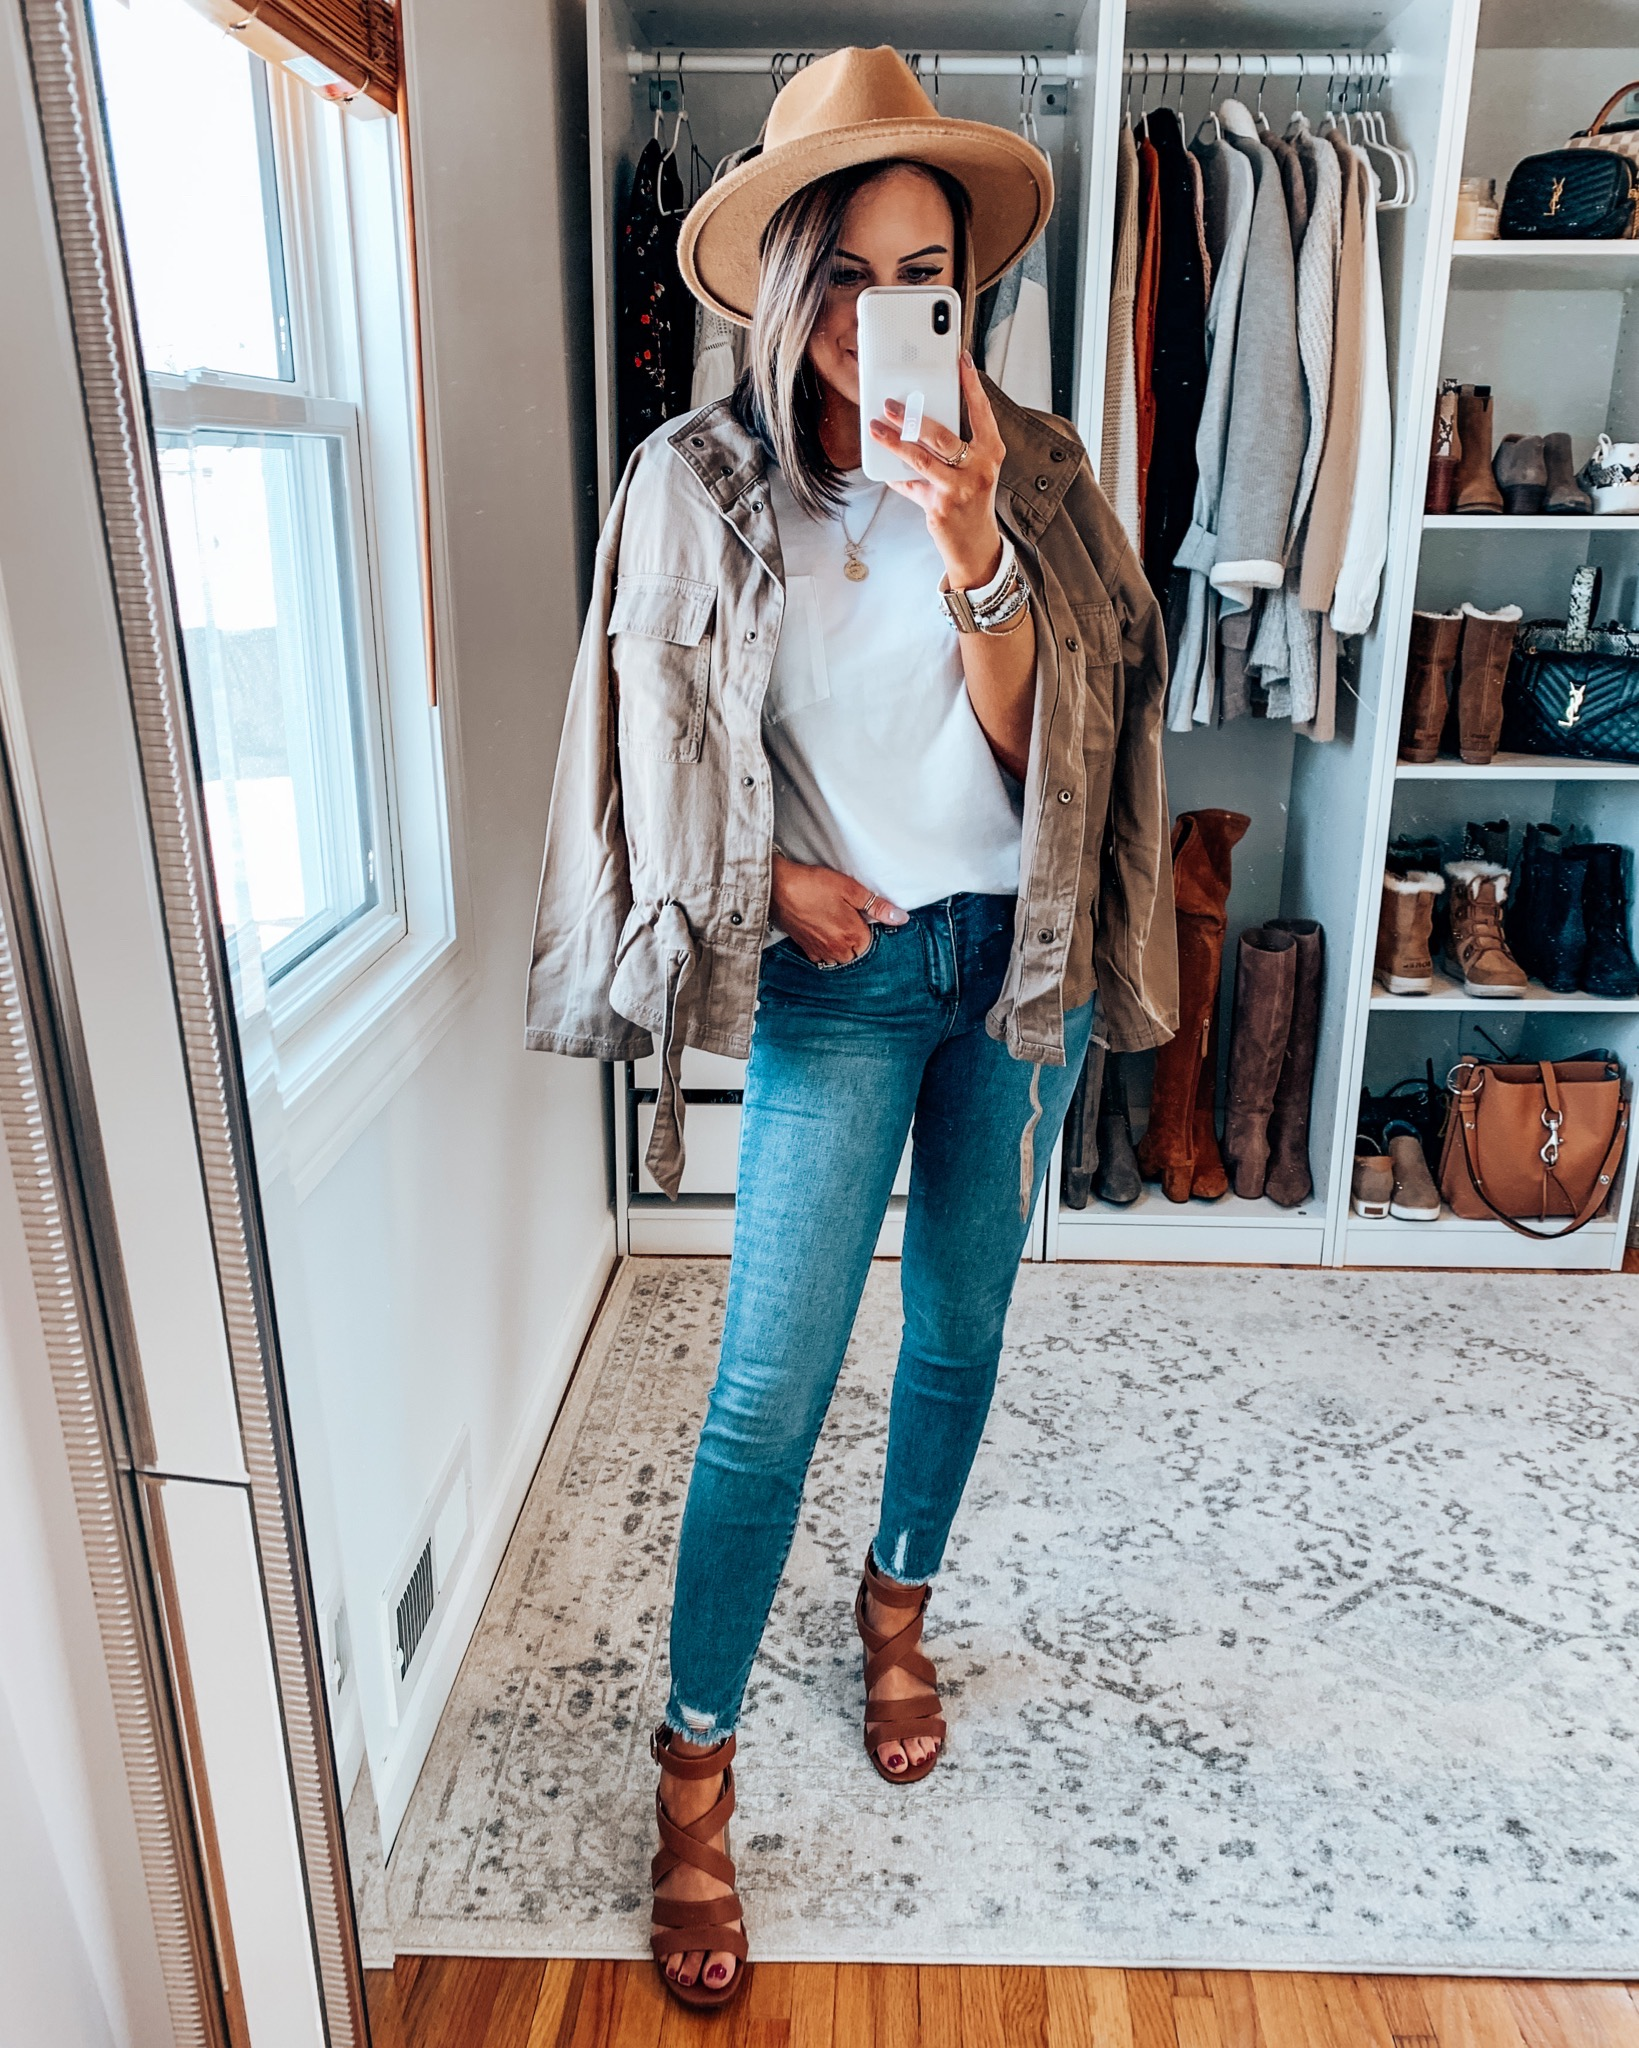 7 Ways to Style a Basic White Tee & Jeans | Style Blogger Lauren Meyer shares 7 Ways to Style a Basic Tee & Jeans